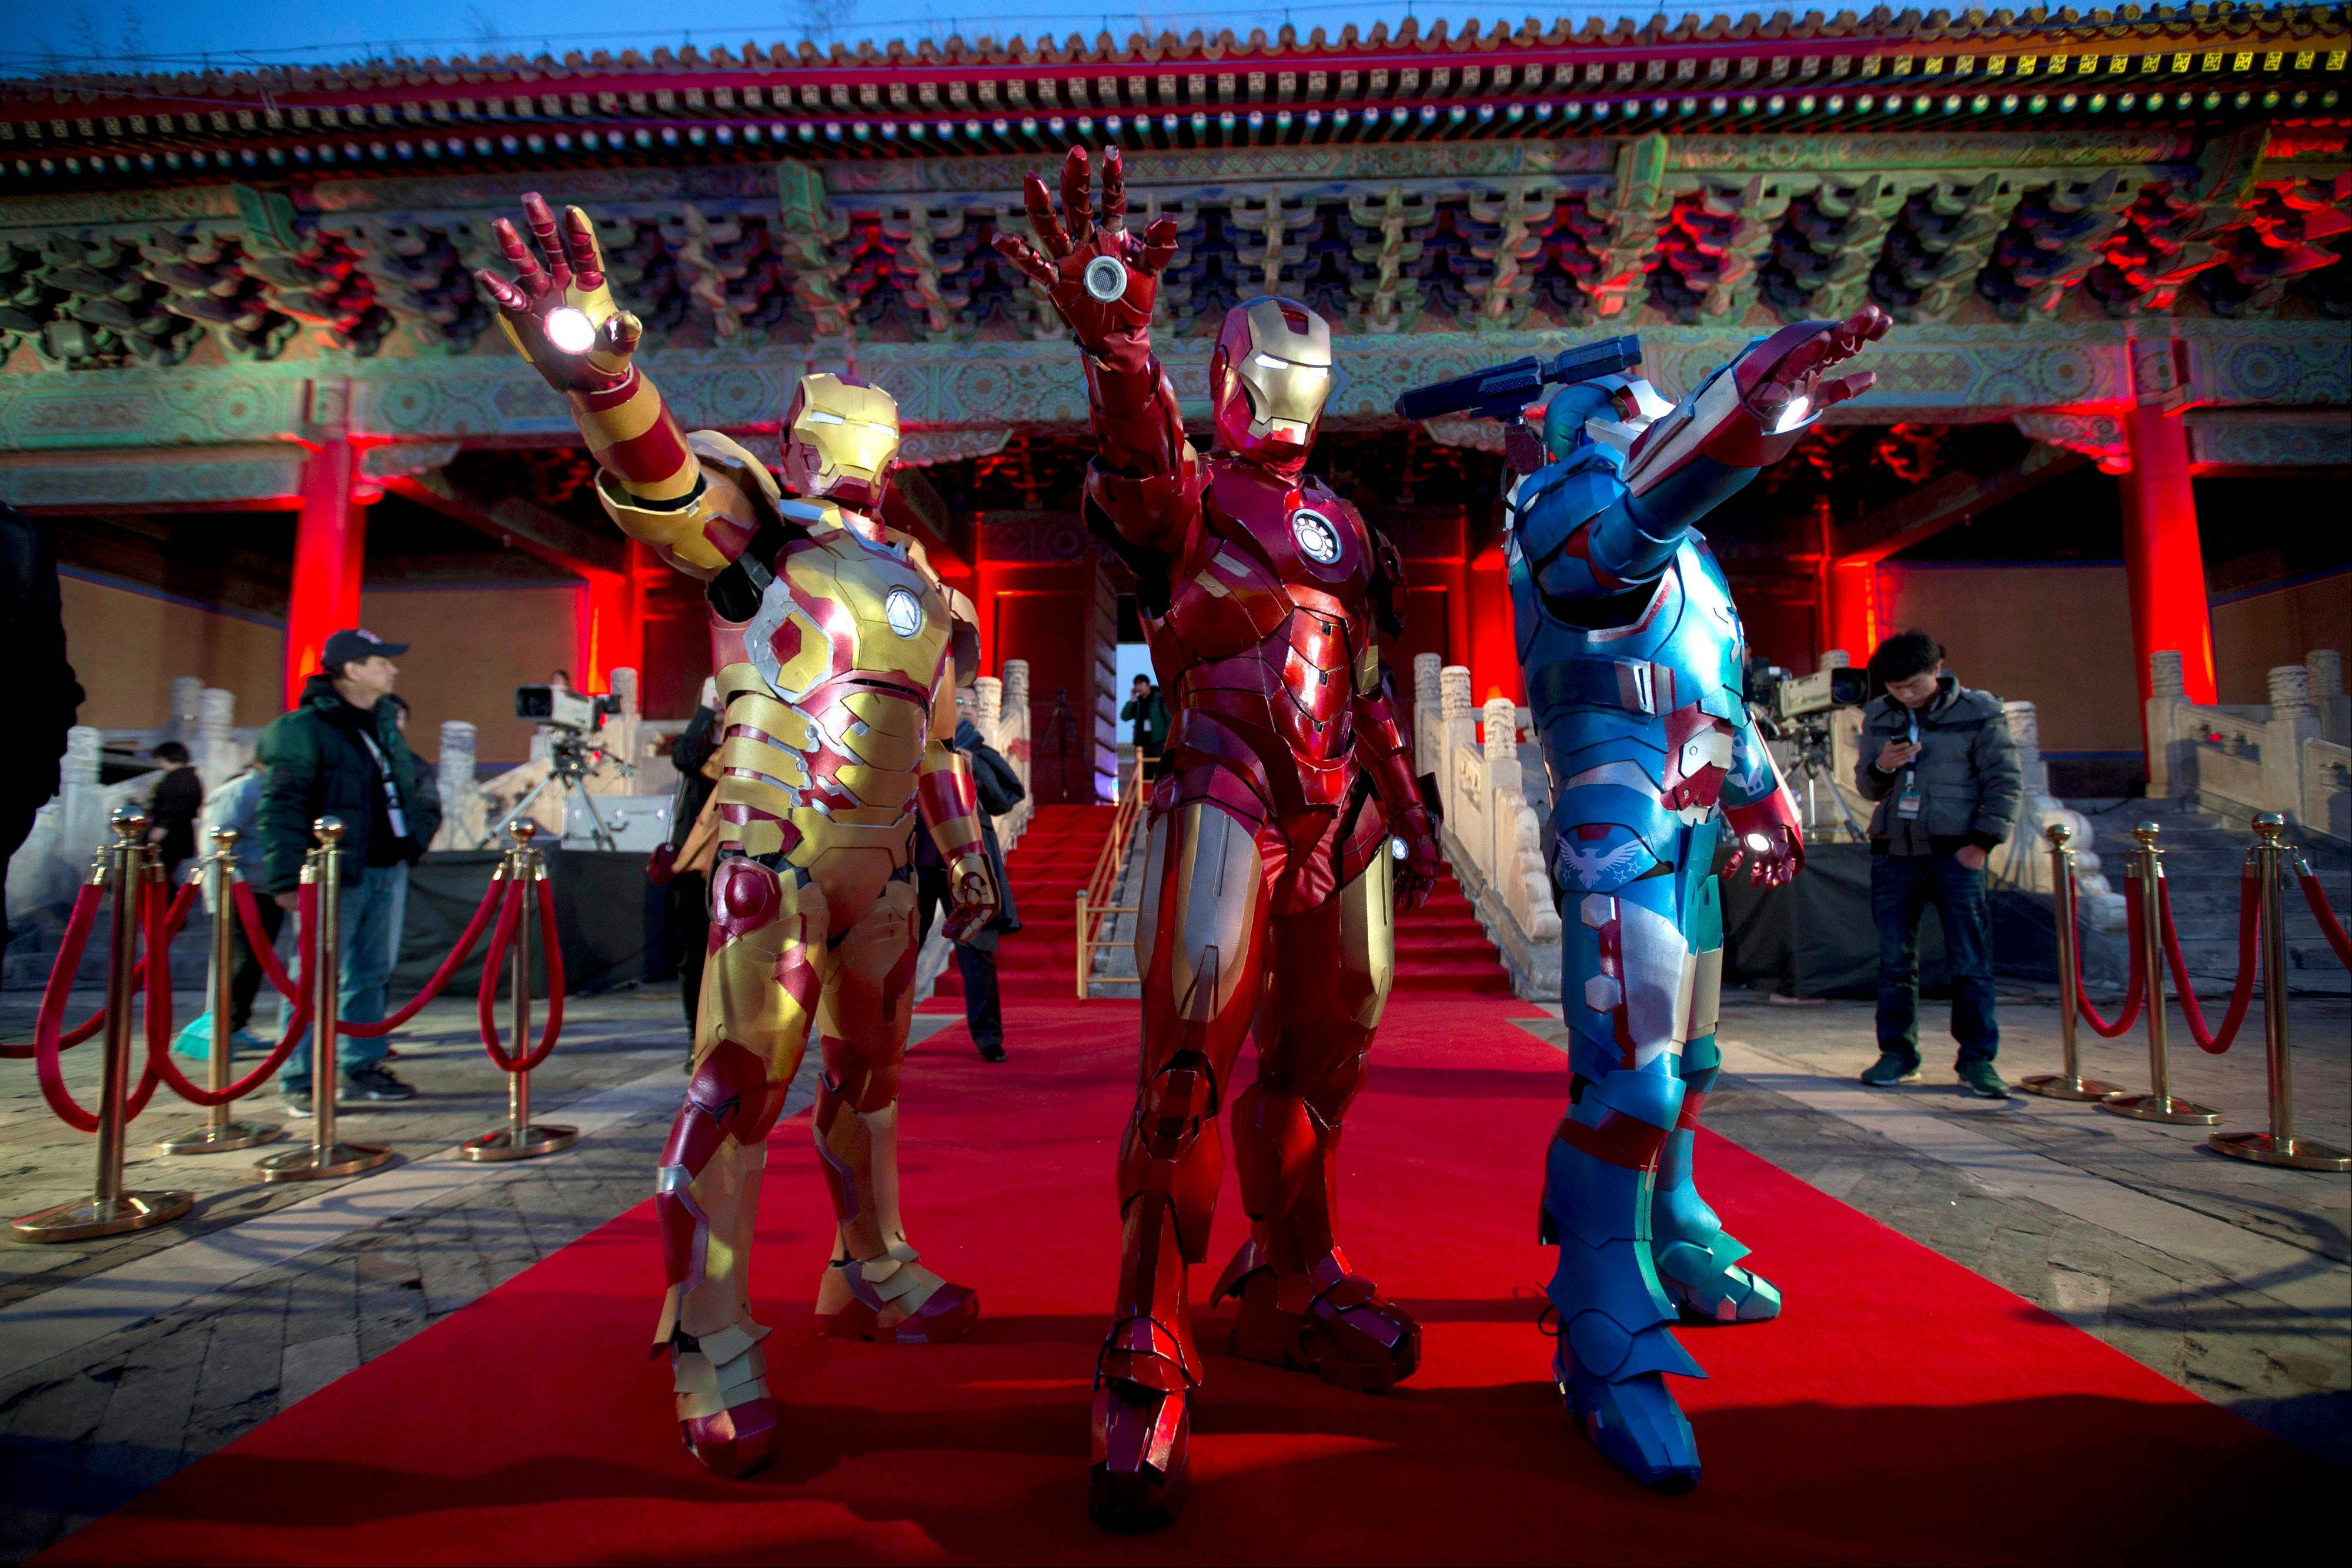 "In this Saturday, April 6, 2013 file photo, Chinese performers dressed as Iron Man pose for photos during a promotional event for the movie ""Iron Man 3"" before its release in China in early May at the Imperial Ancestral Temple in Beijing's Forbidden City. Hong Kong Disneyland is adding an Iron Man-themed area in the hopes that the Marvel superhero's success at the Chinese box office will help draw more visitors to the underachieving resort. The park said Tuesday, Oct. 8 that the Iron Man Experience is planned to open by late 2016."